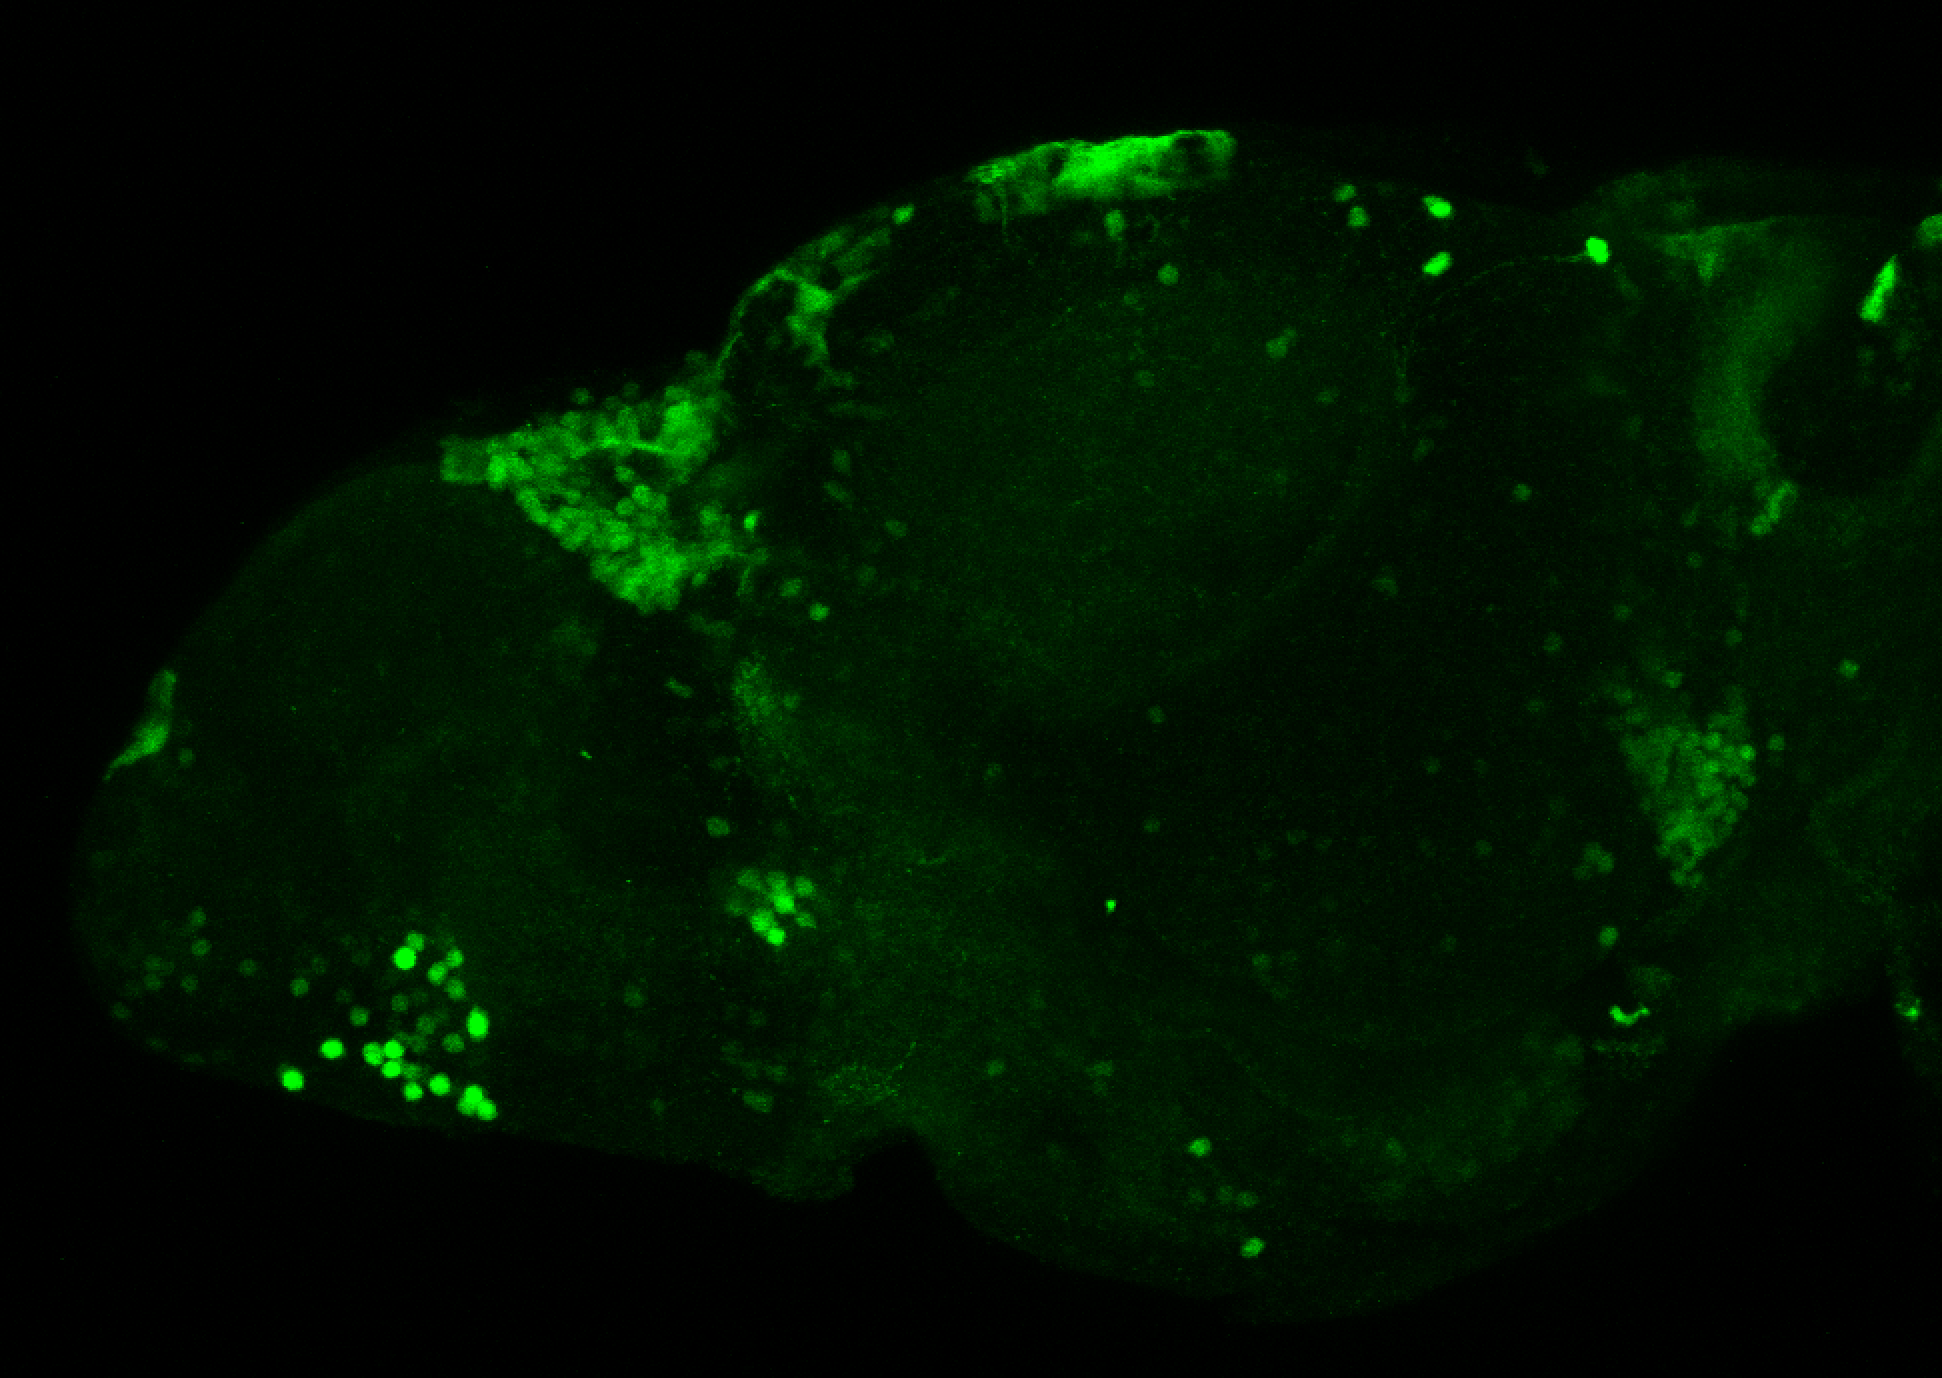 xeom:GFP 5dpf lateral